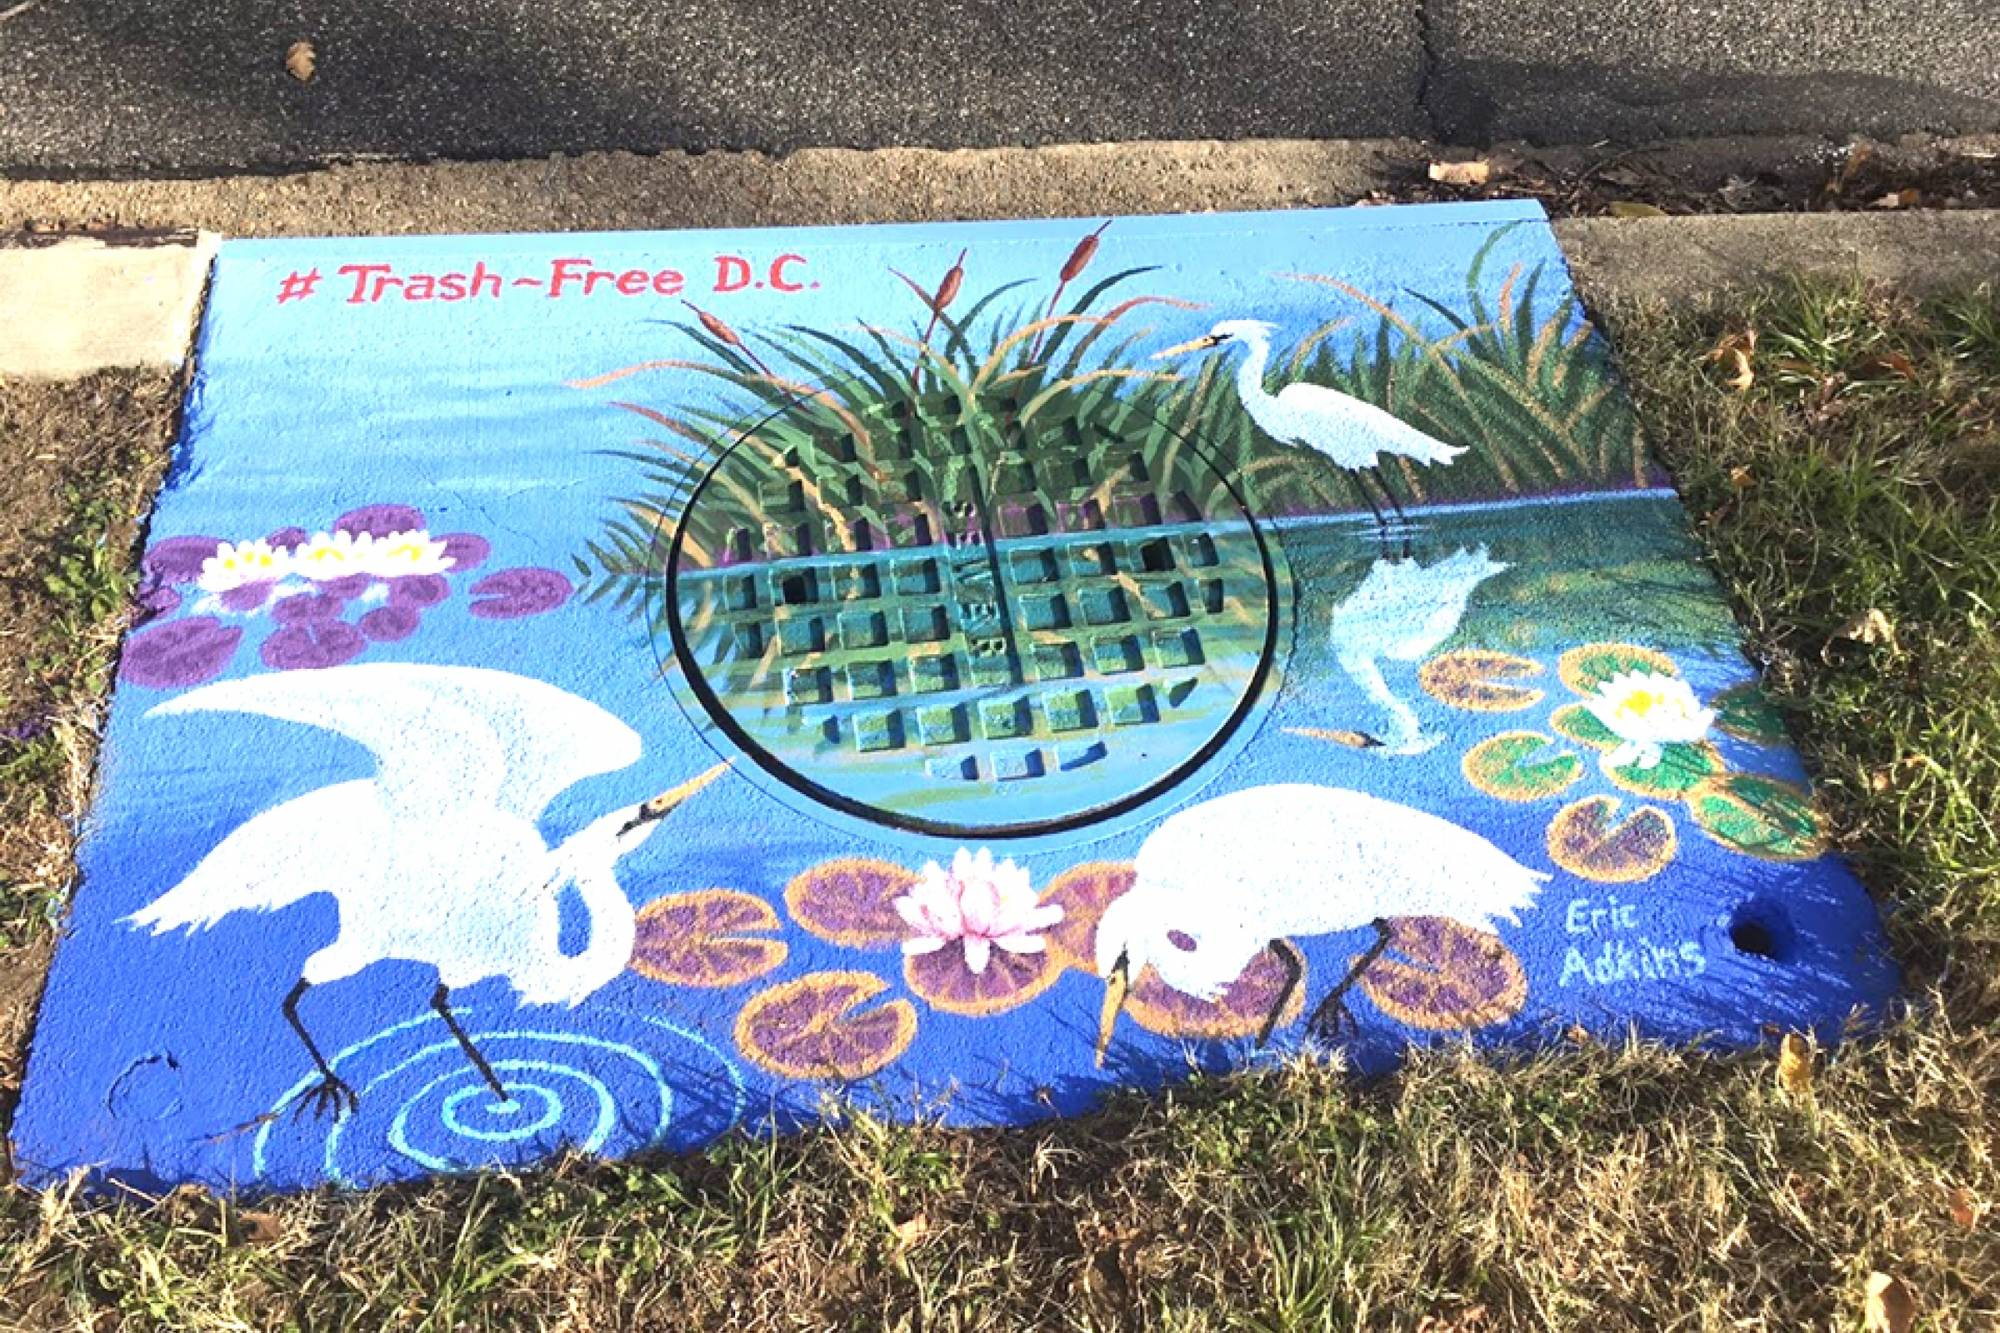 Call For Artists: Storm Drain Murals in Lamond-Riggs